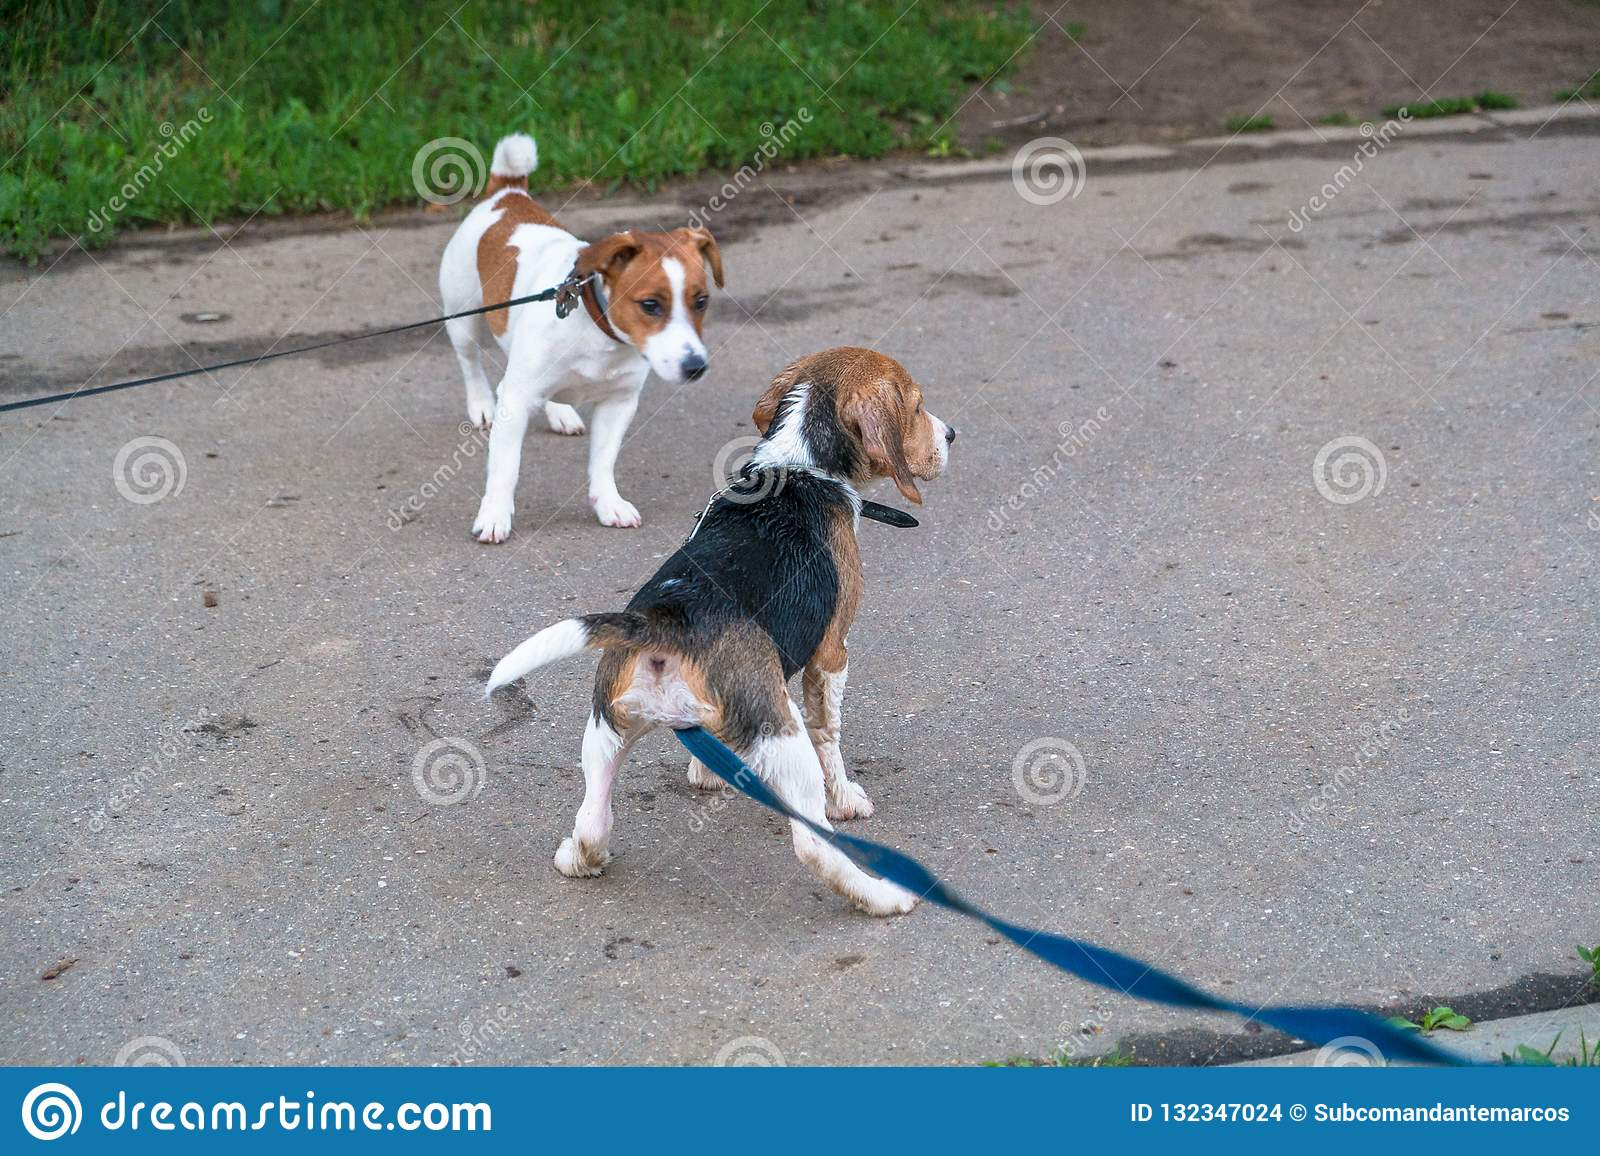 Russell The Puppy In City Beagle A Jack Terrier And For Walk xBoeWdrC